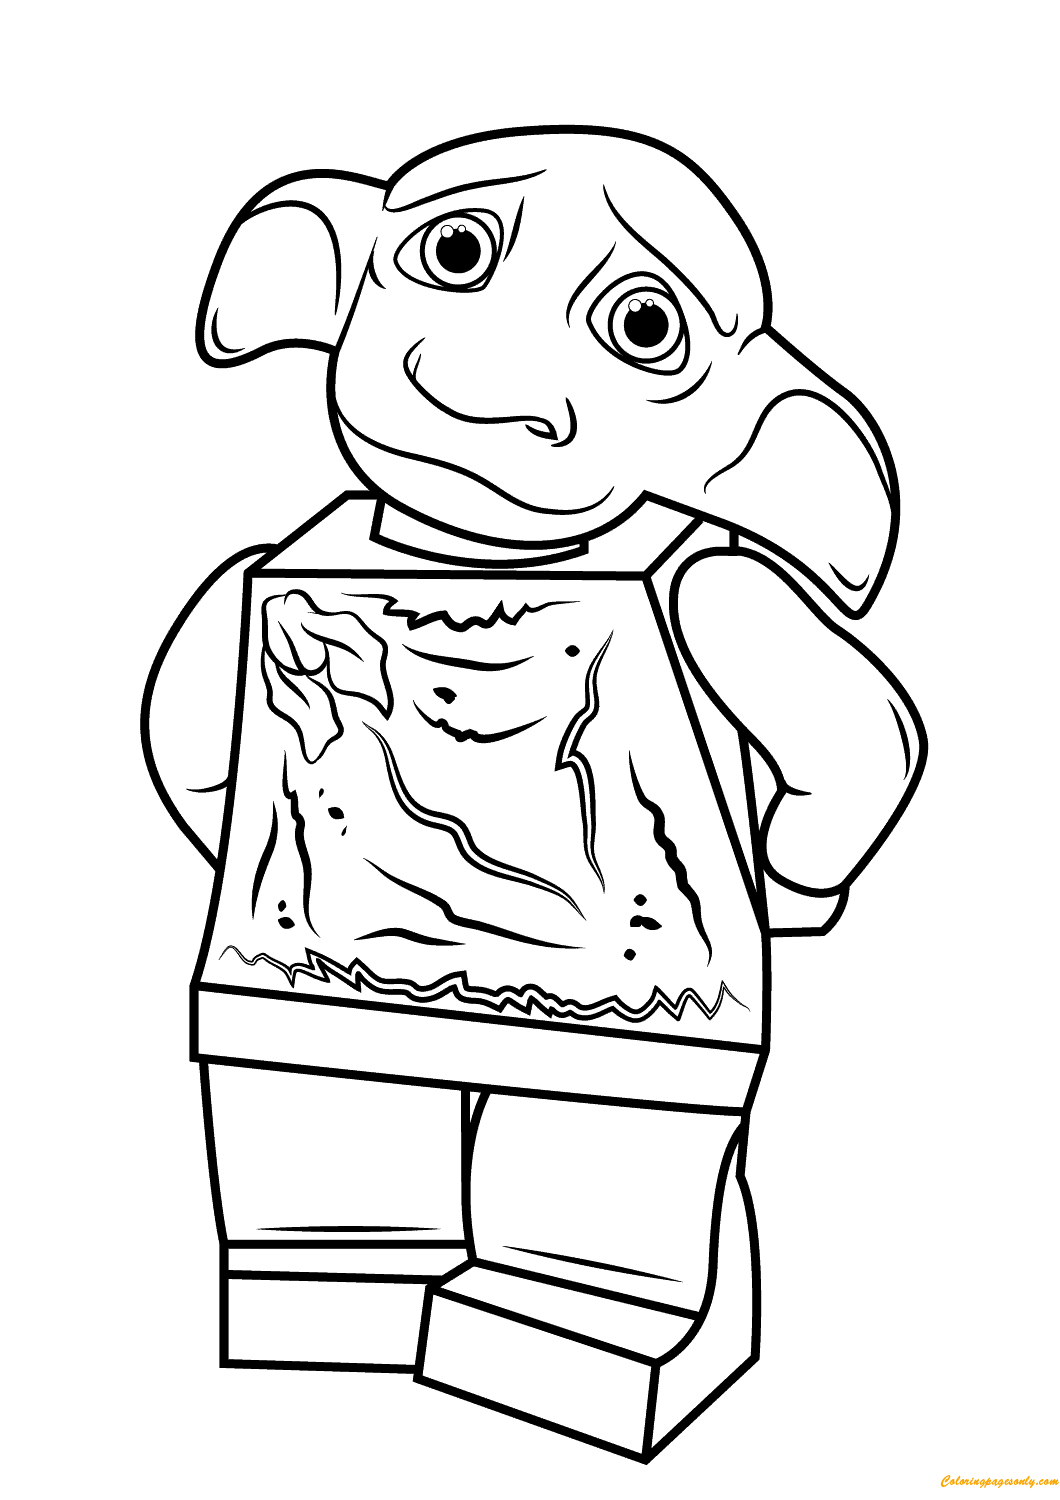 1060x1500 Lego Dobby Harry Potter Coloring Page Free Pages Online